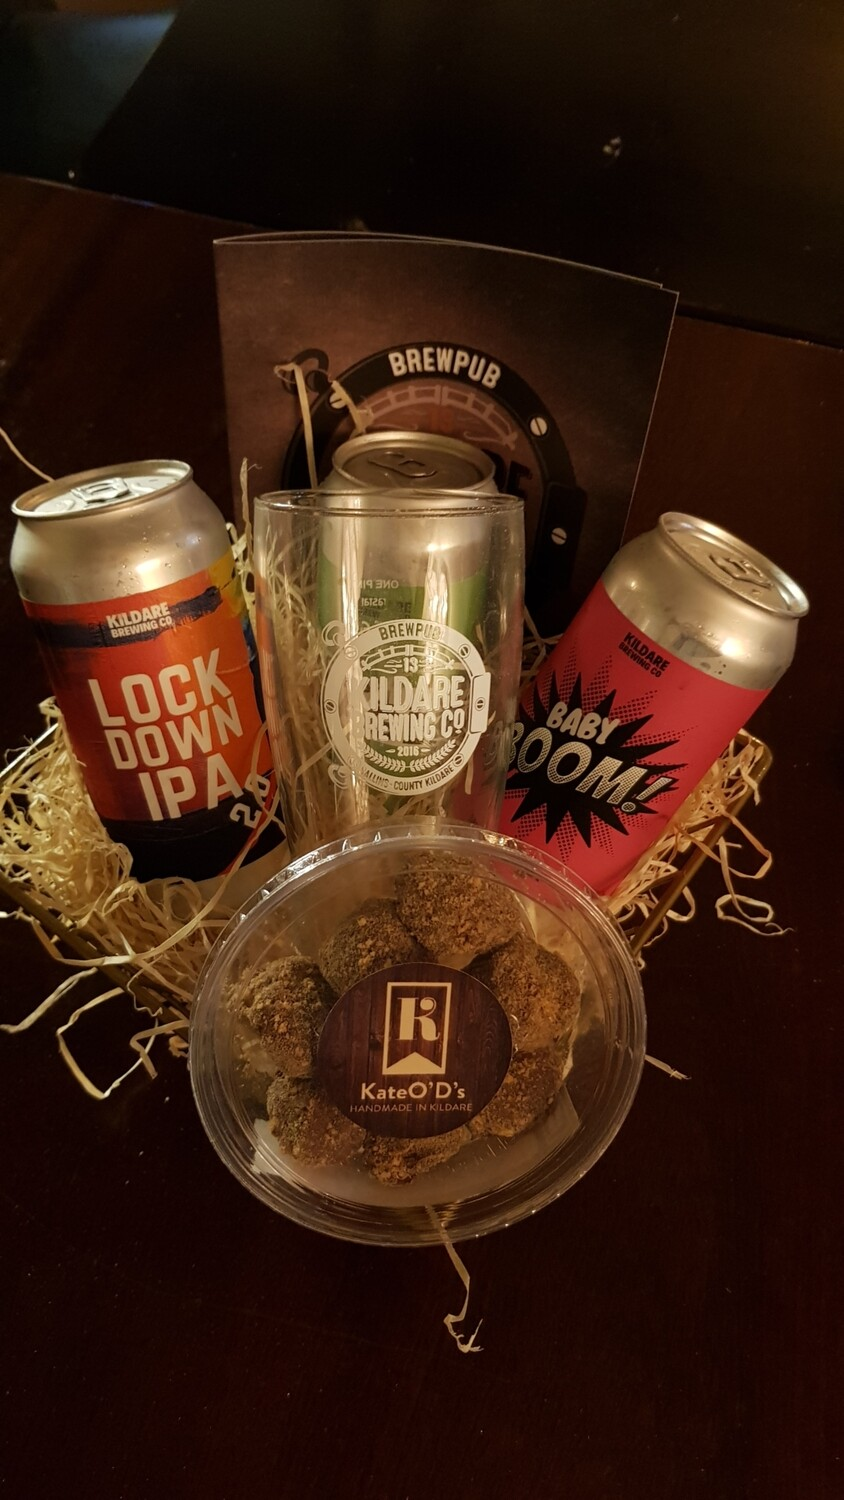 Beer, Pint Glass & Truffle Hamper